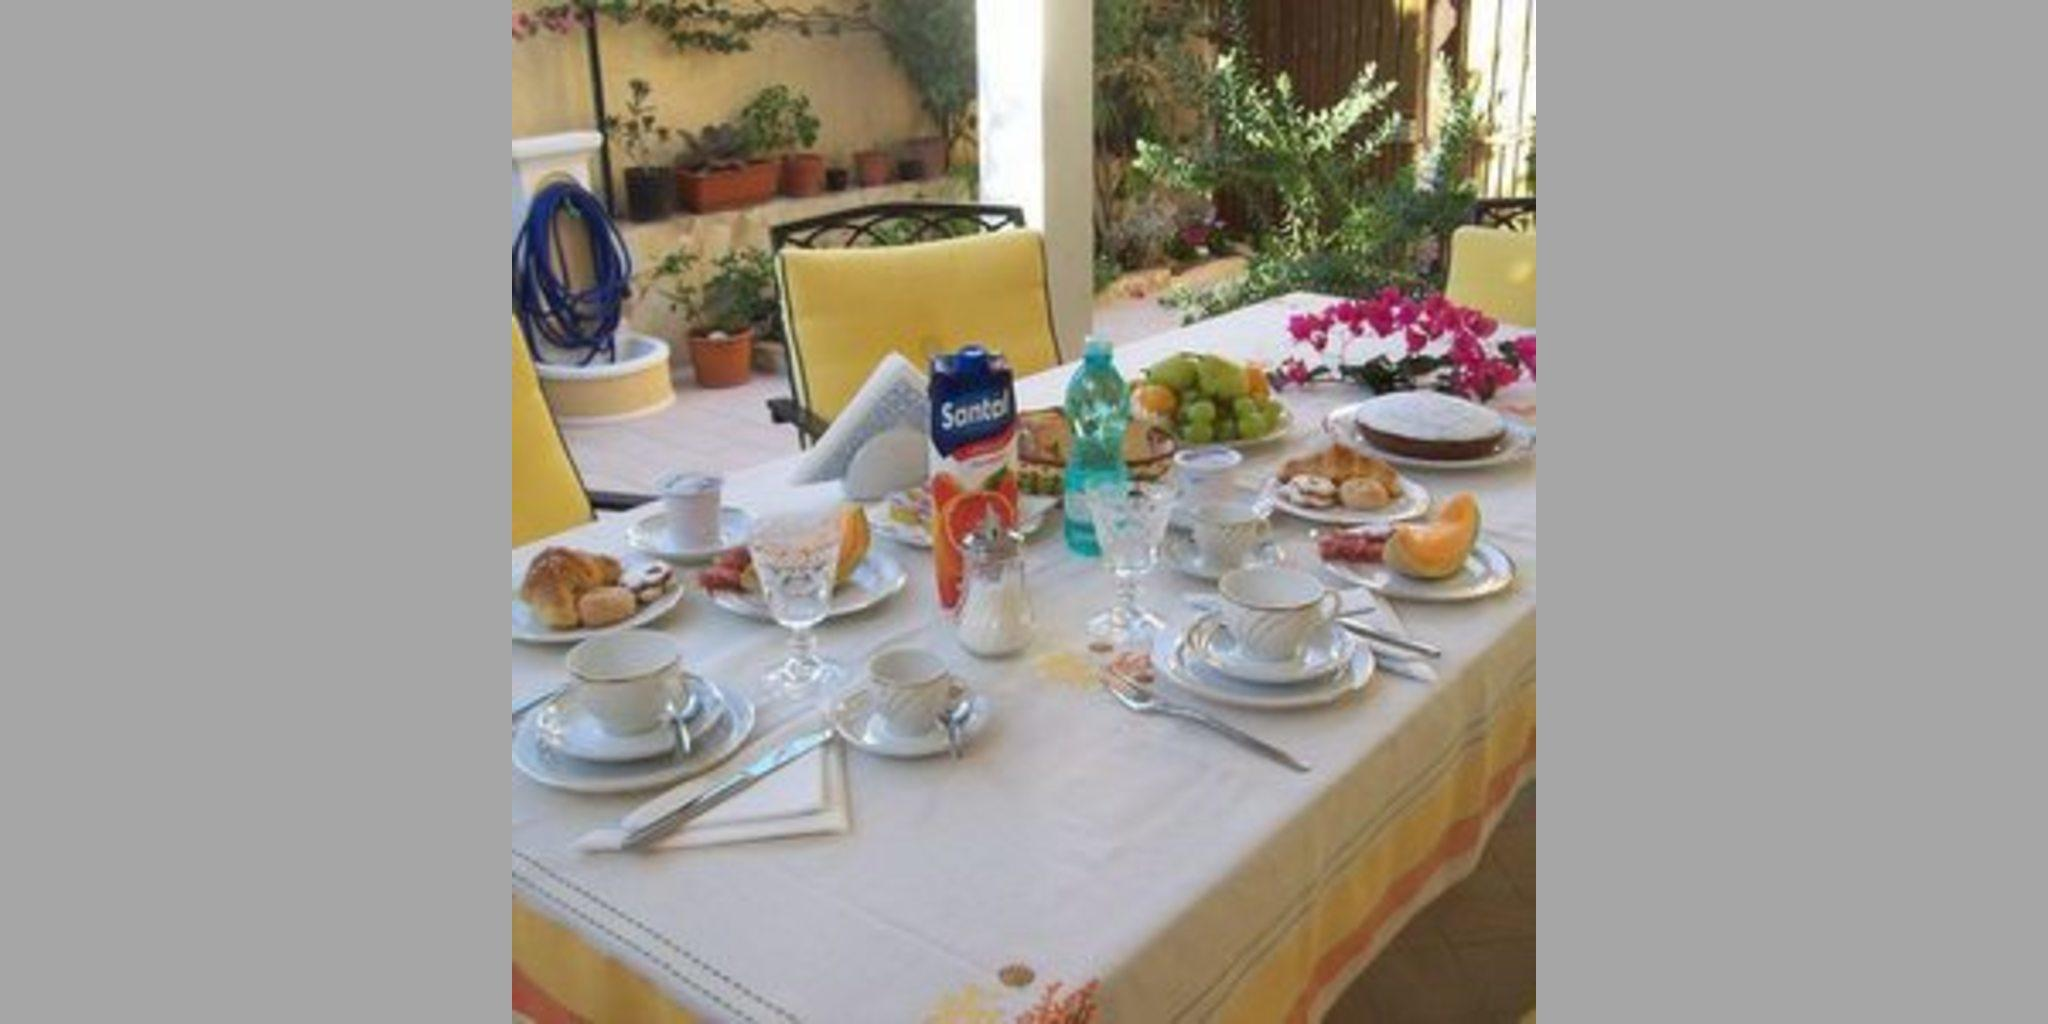 Bed & Breakfast Piscinas - Le Dune Di Porto Pino